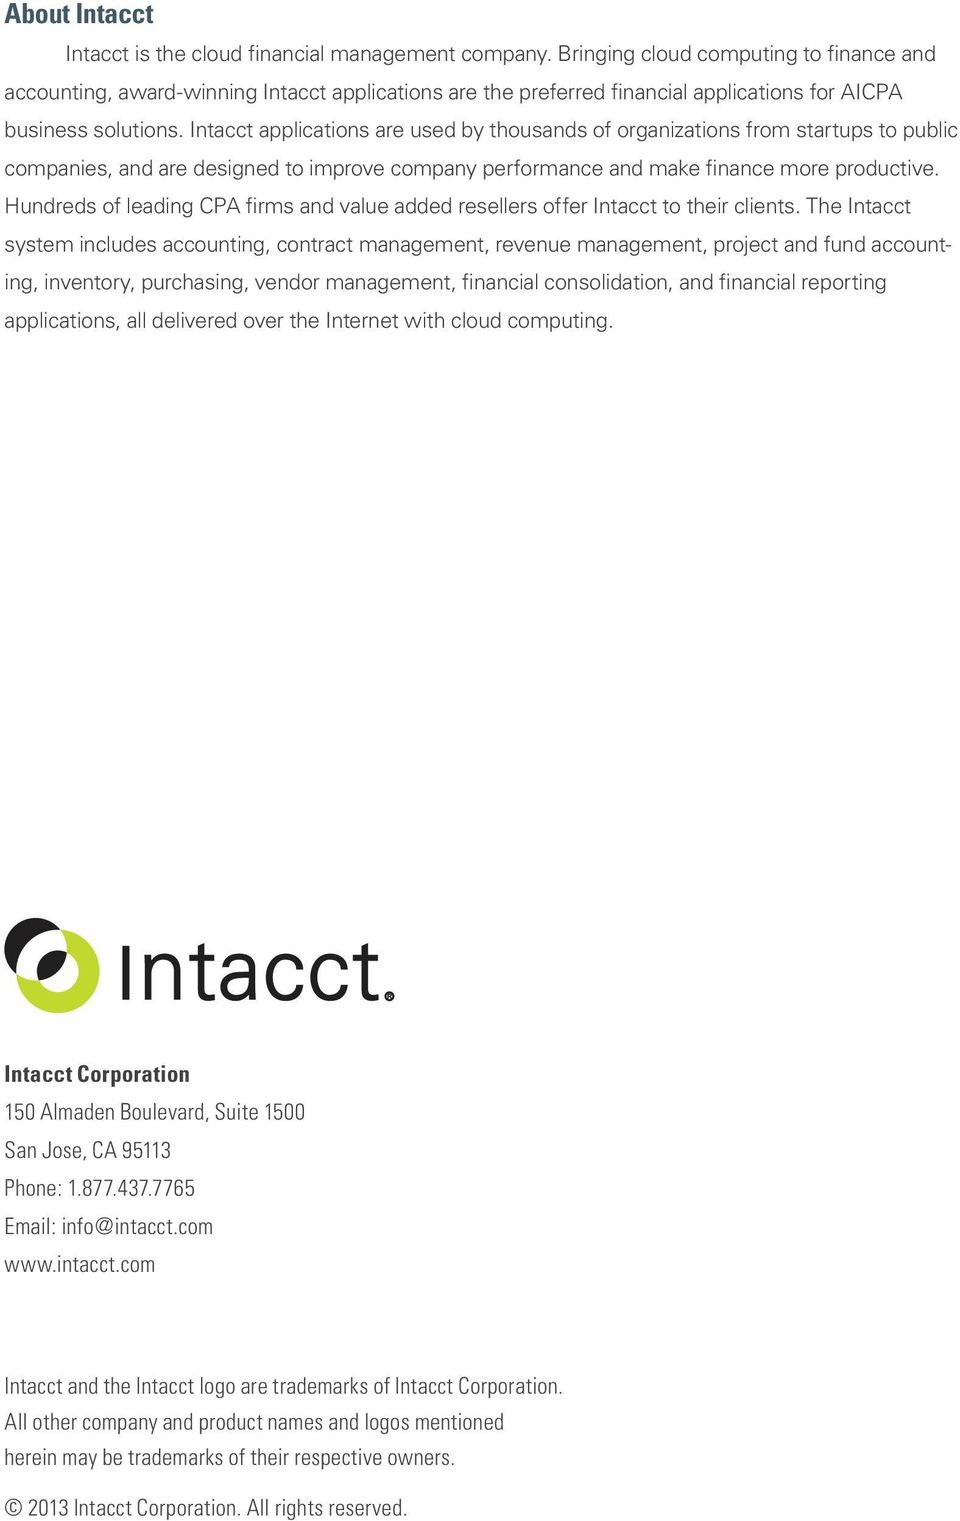 Intacct applications are used by thousands of organizations from startups to public companies, and are designed to improve company performance and make finance more productive.